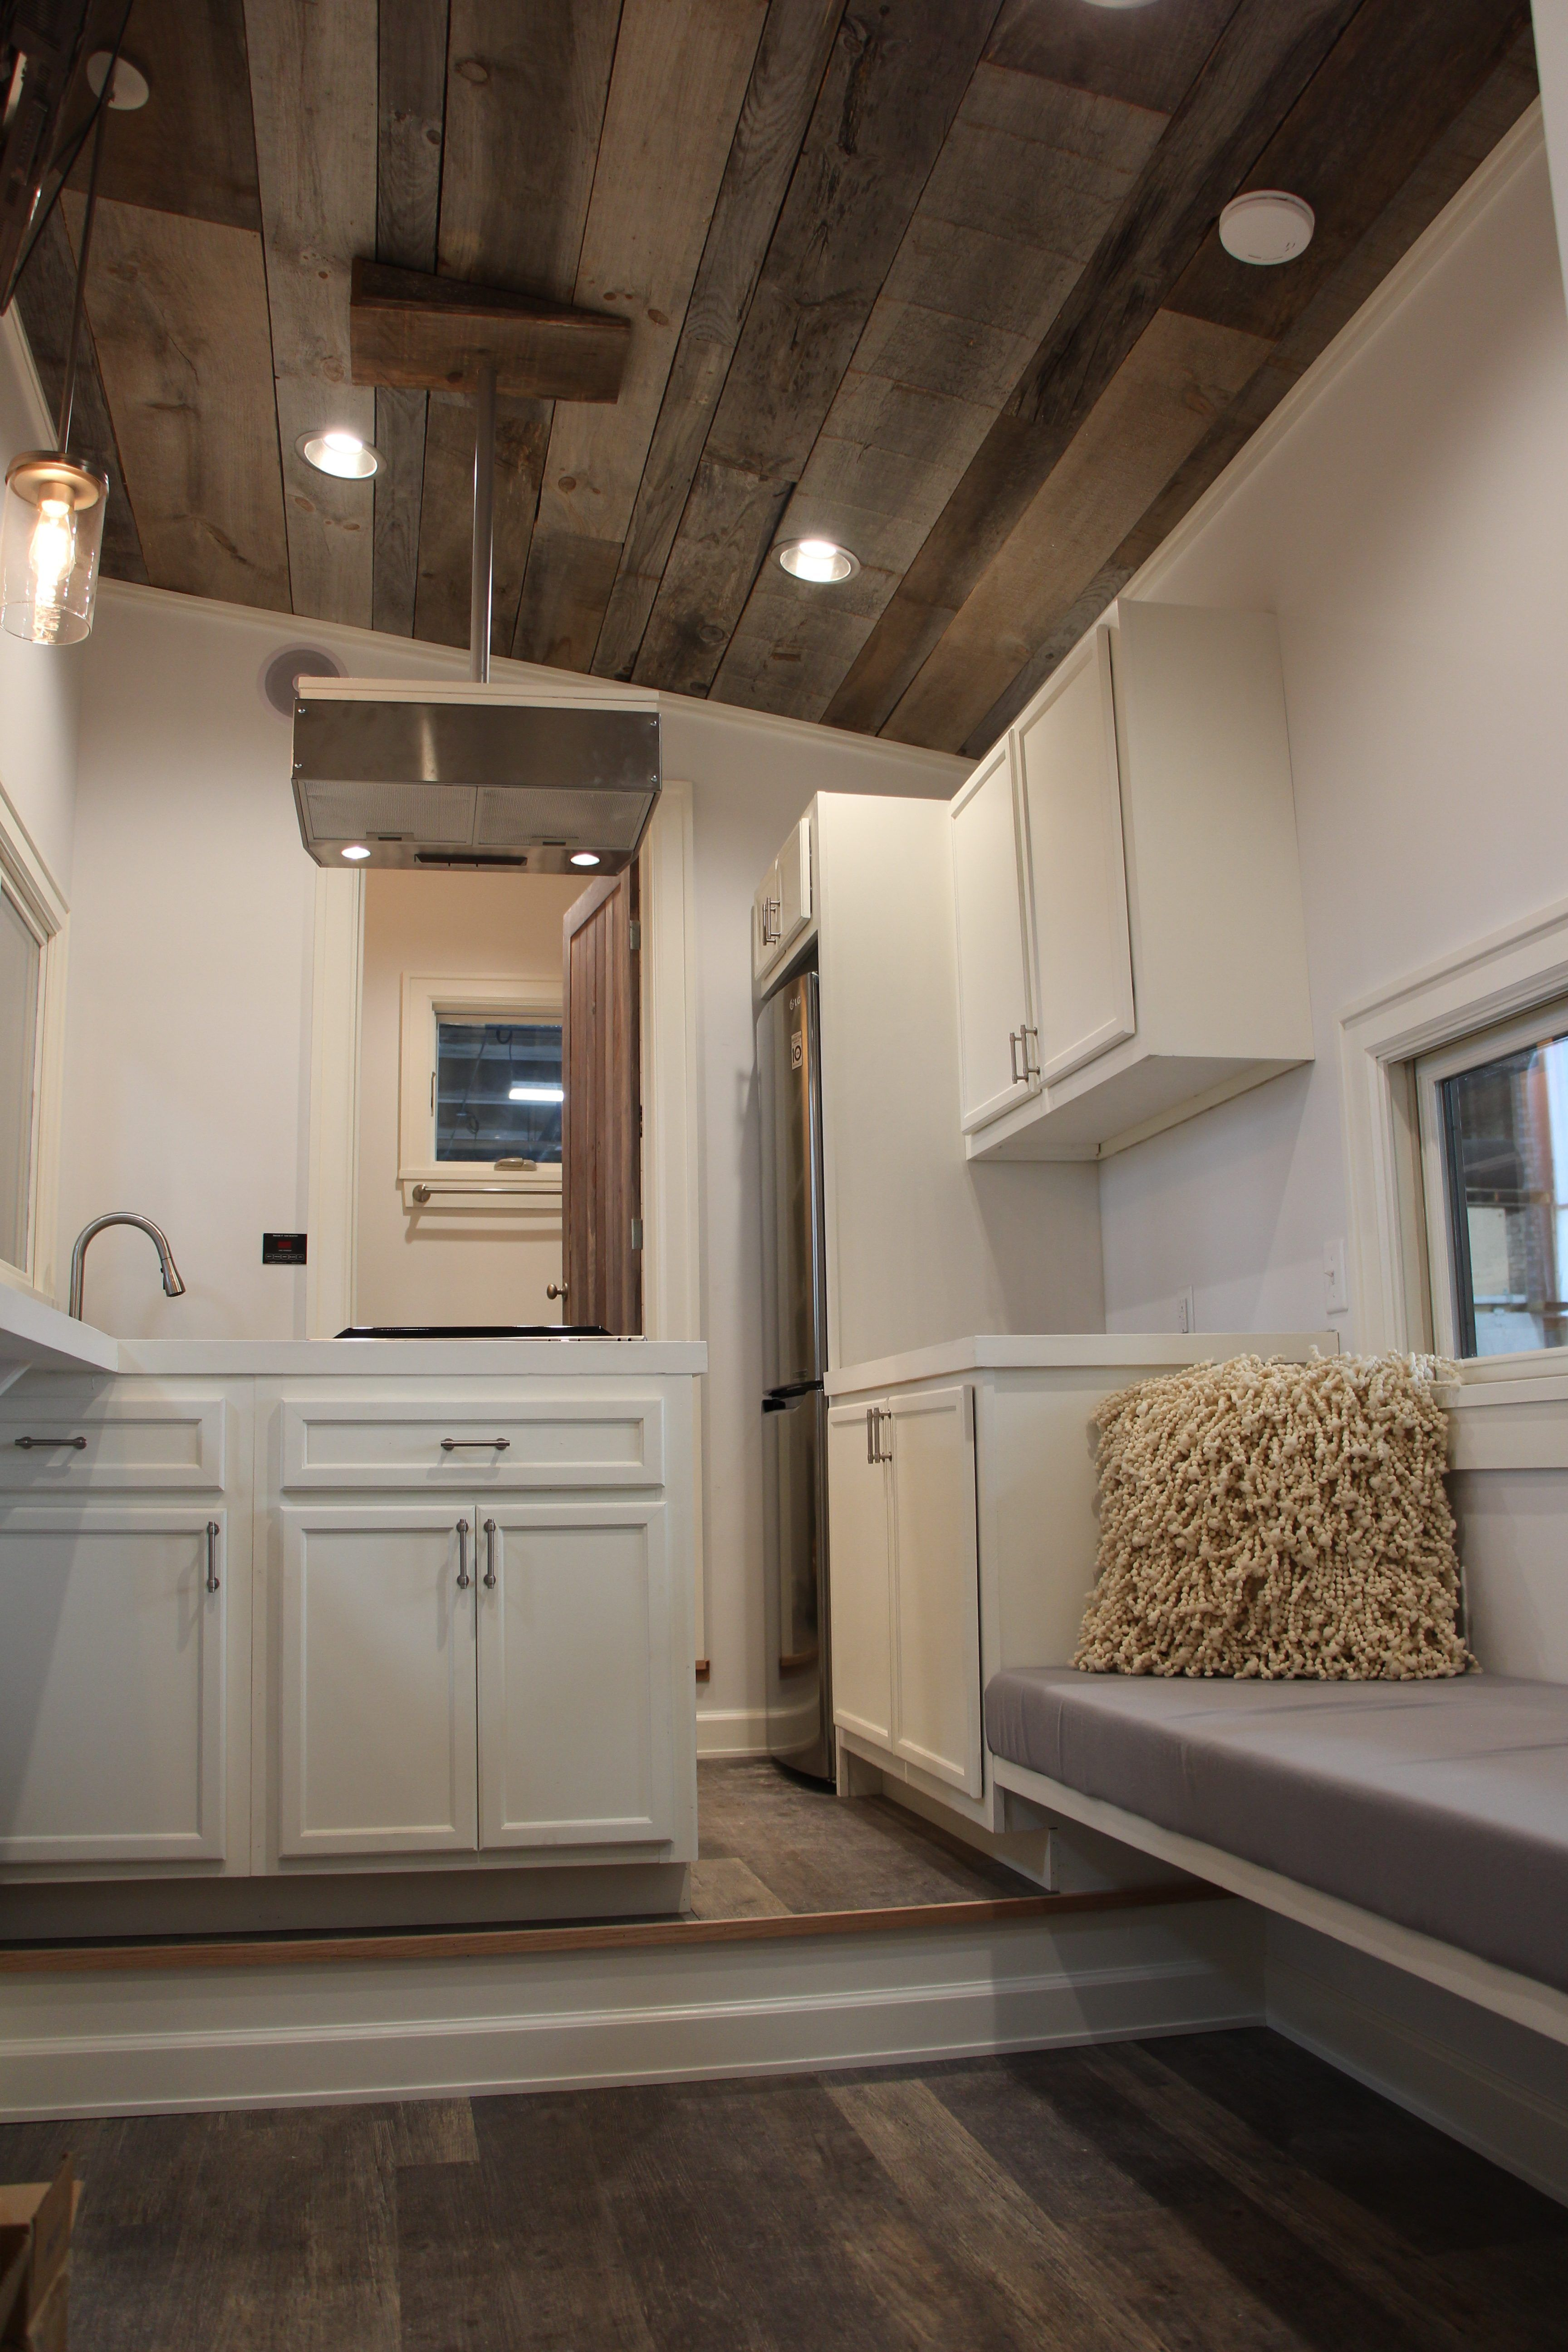 Check Out This #Tinyhome On #Sale Save $9,000 On This